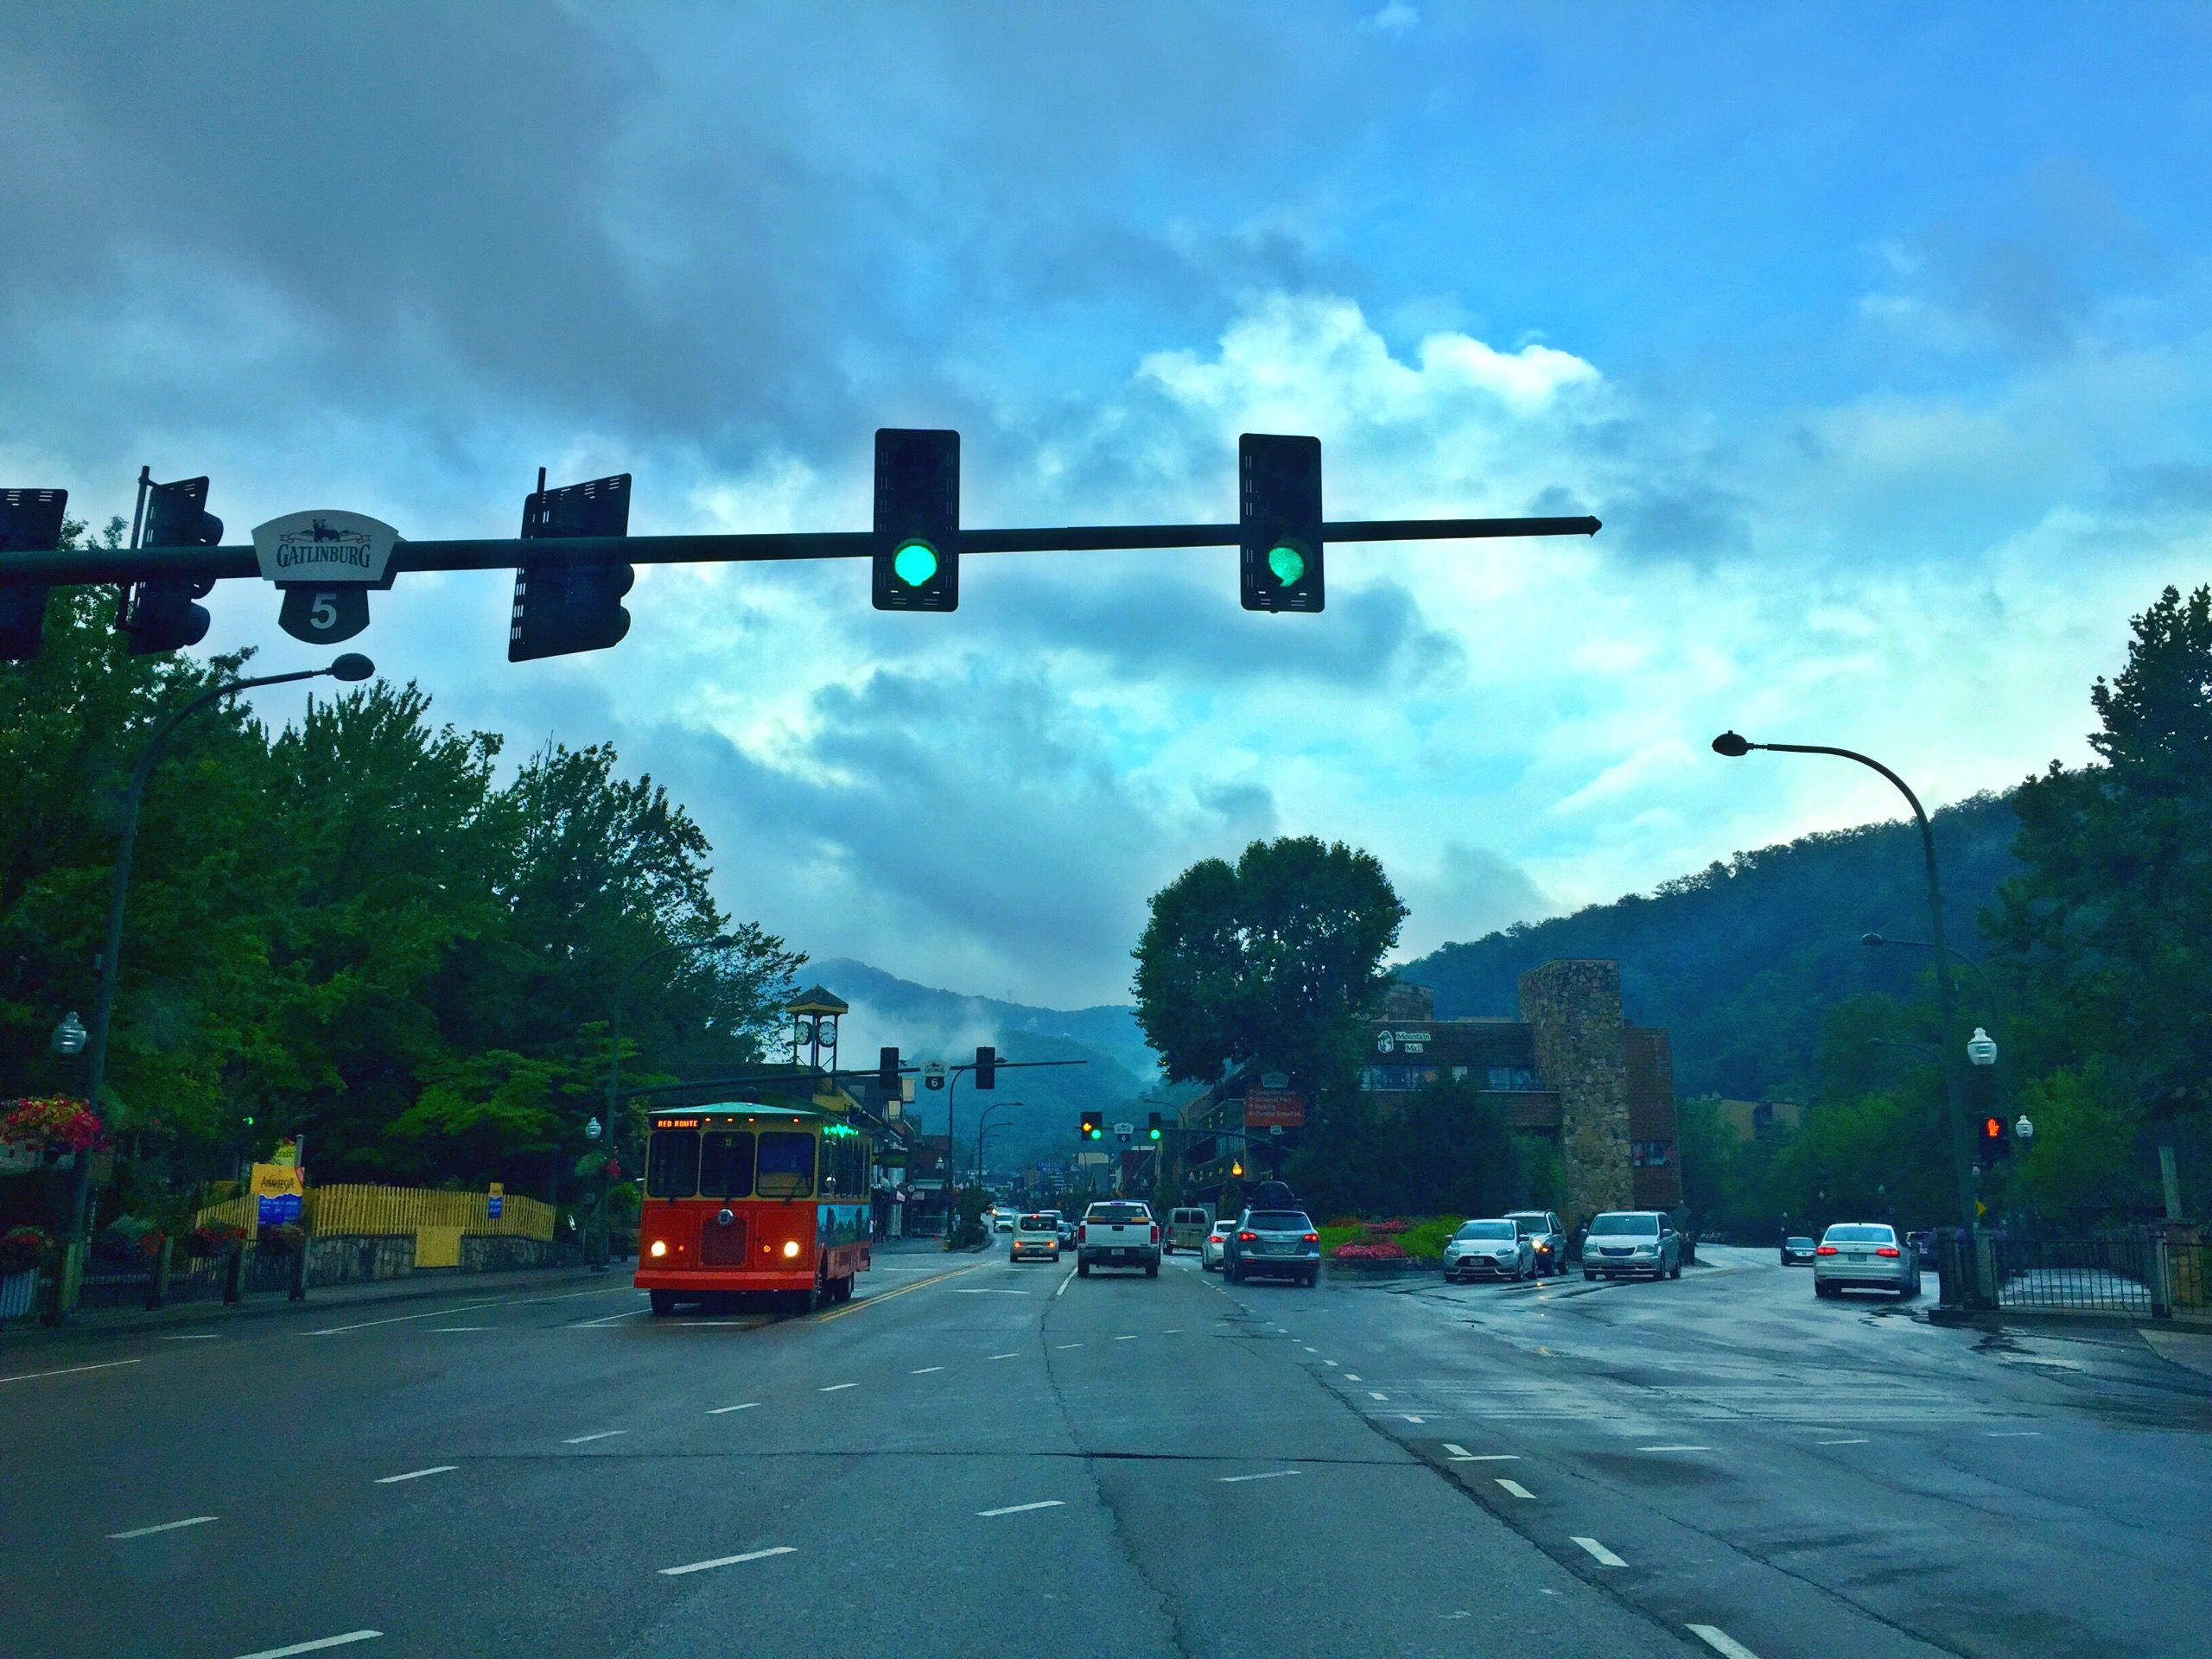 How to spend a rainy day in #Gatlinburg - read our suggestions on ...